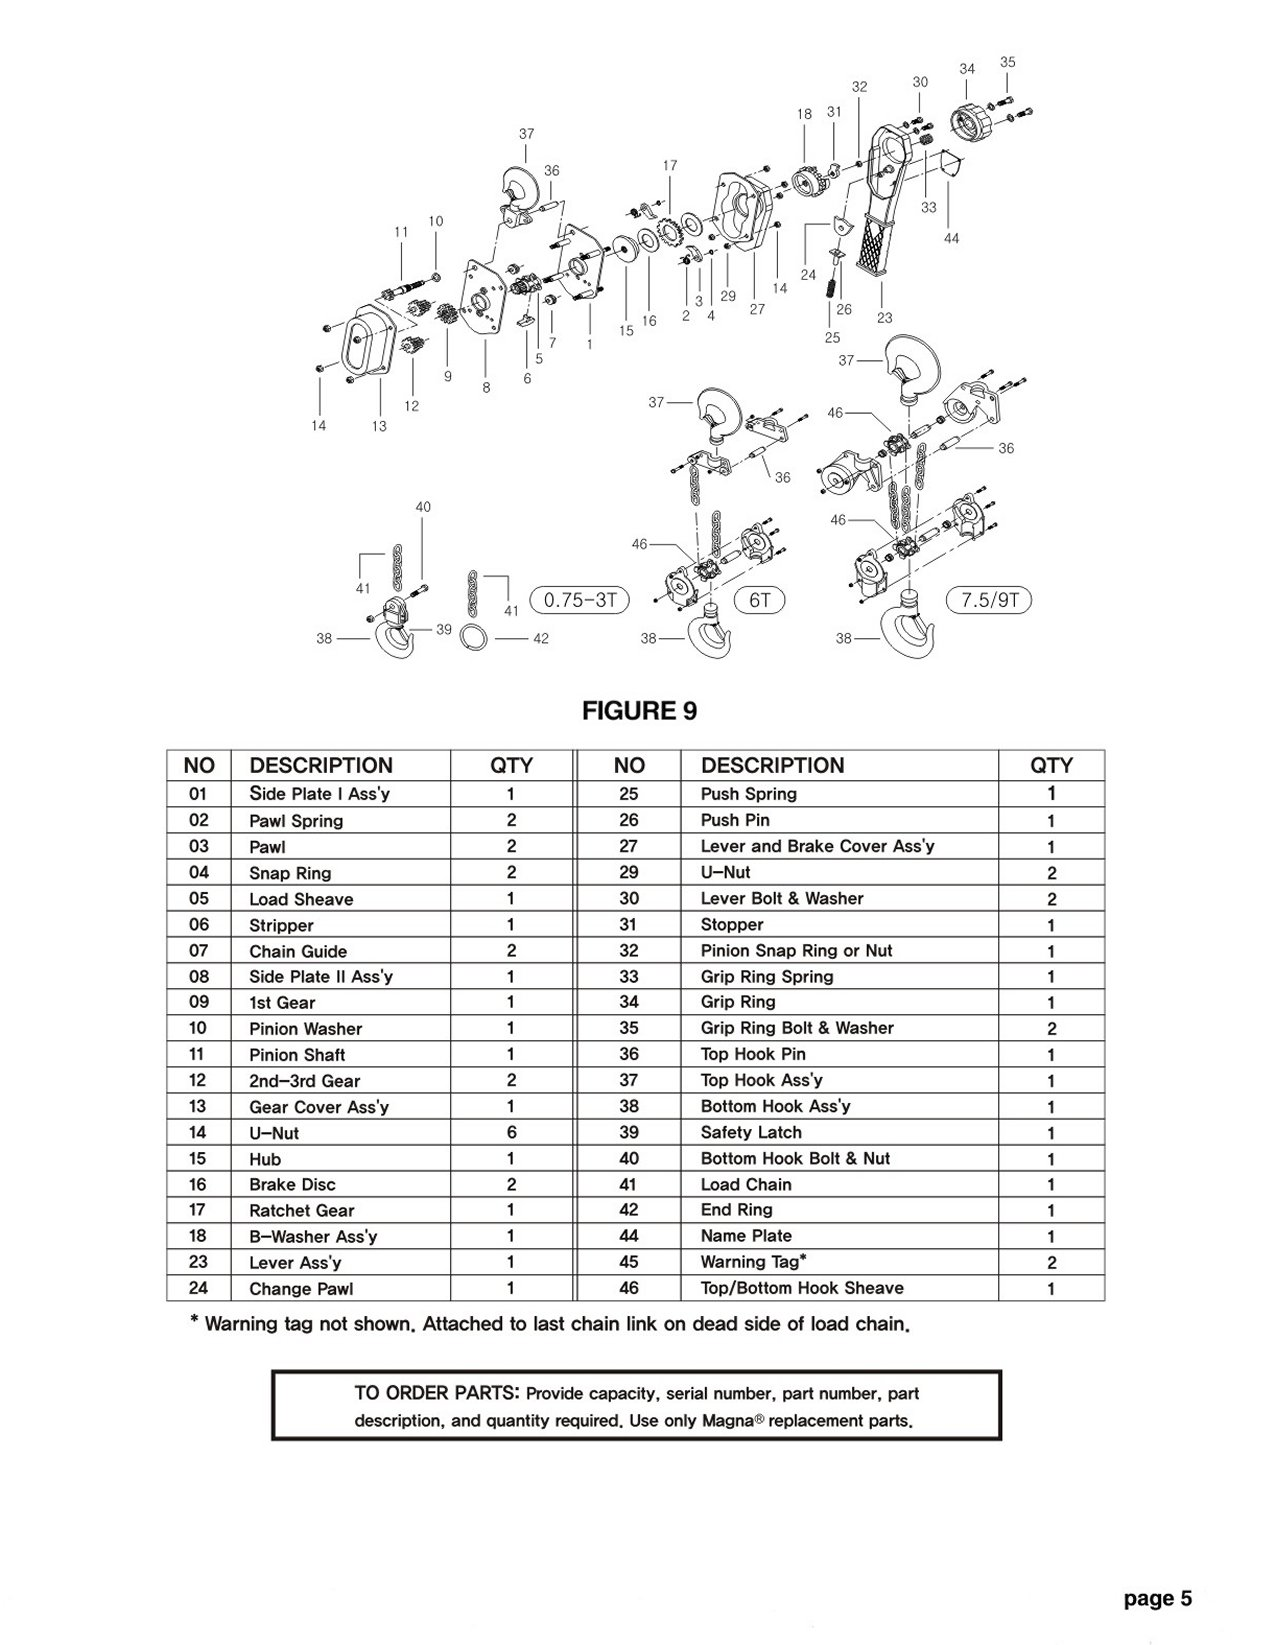 Allis Chalmers D17 Parts Diagram also 2011 Mini Cooper Wiring Diagram additionally 1950 Ford Custom Wiring Diagram as well Allis Chalmers Wd45 Wiring Diagram together with Electronic Ignition Farmall H Wiring Diagram. on d17 wiring harness diagram